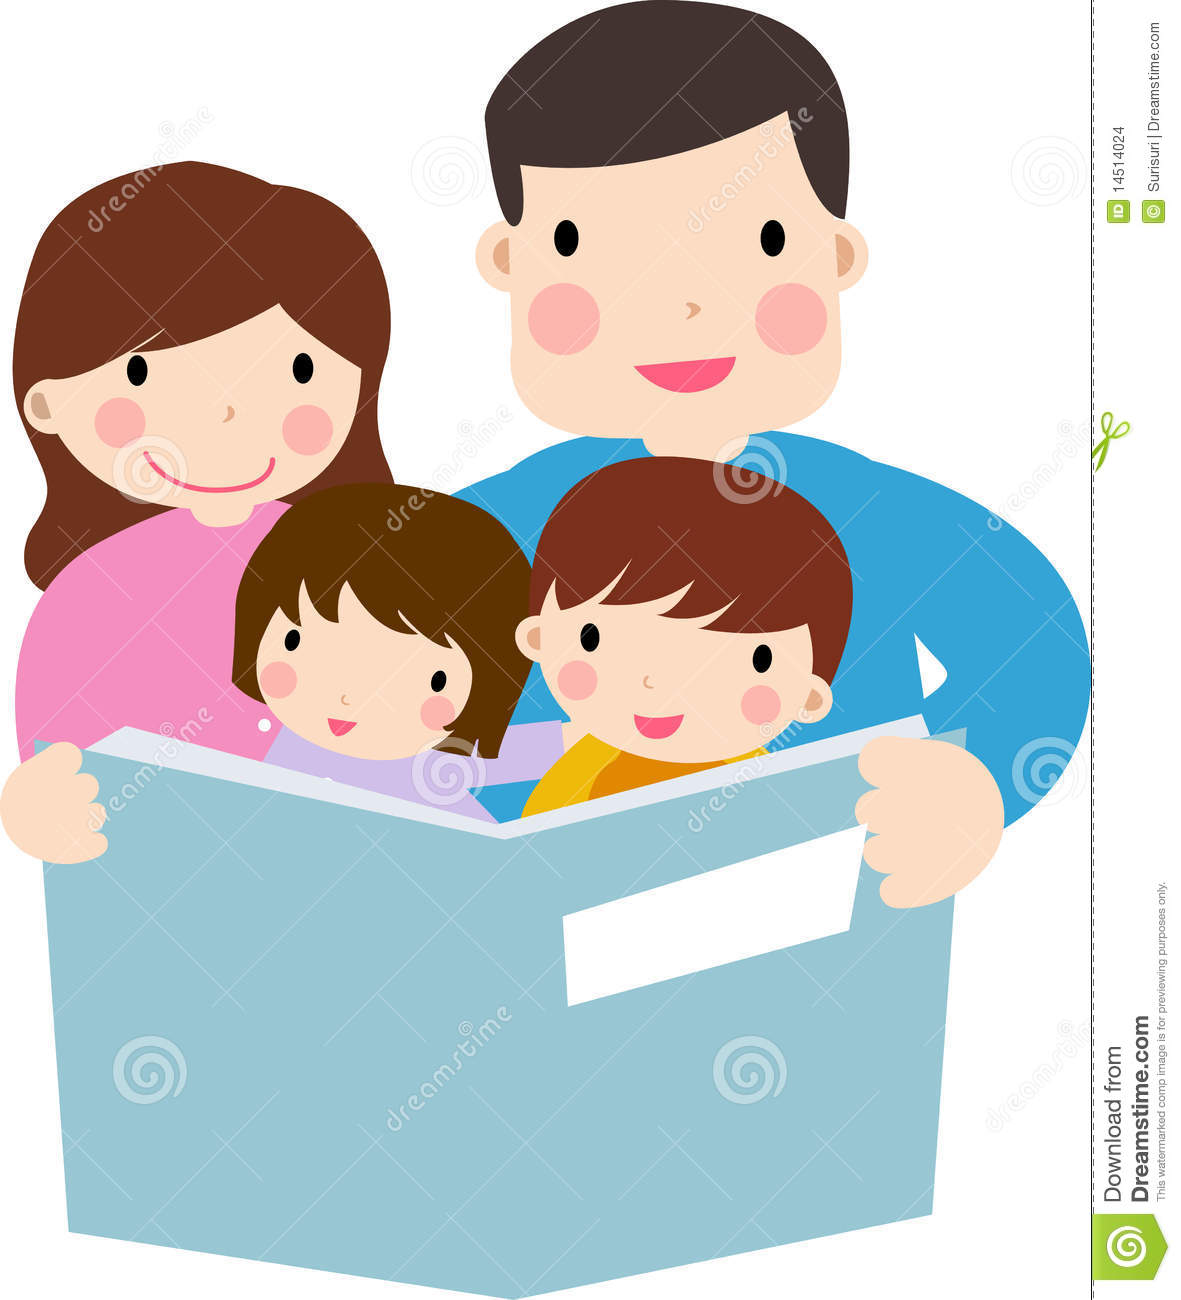 clipart family reading together - photo #1